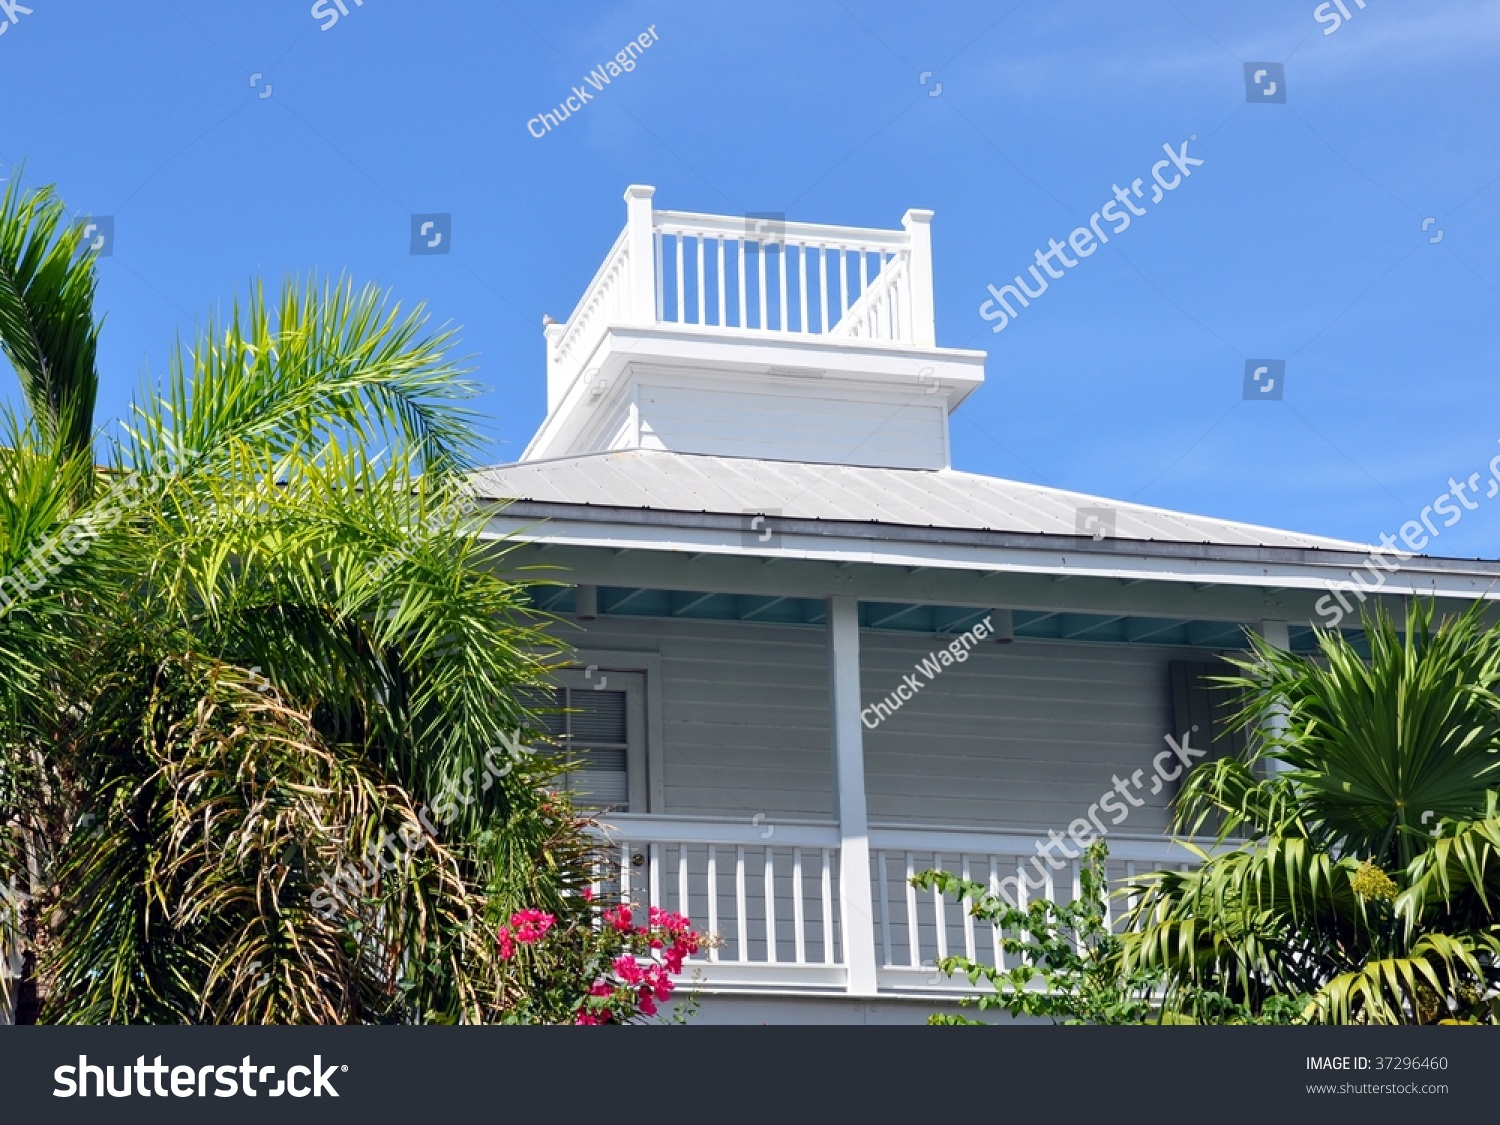 Key west style architecture with widow 39 s walk stock photo for Key west architecture style